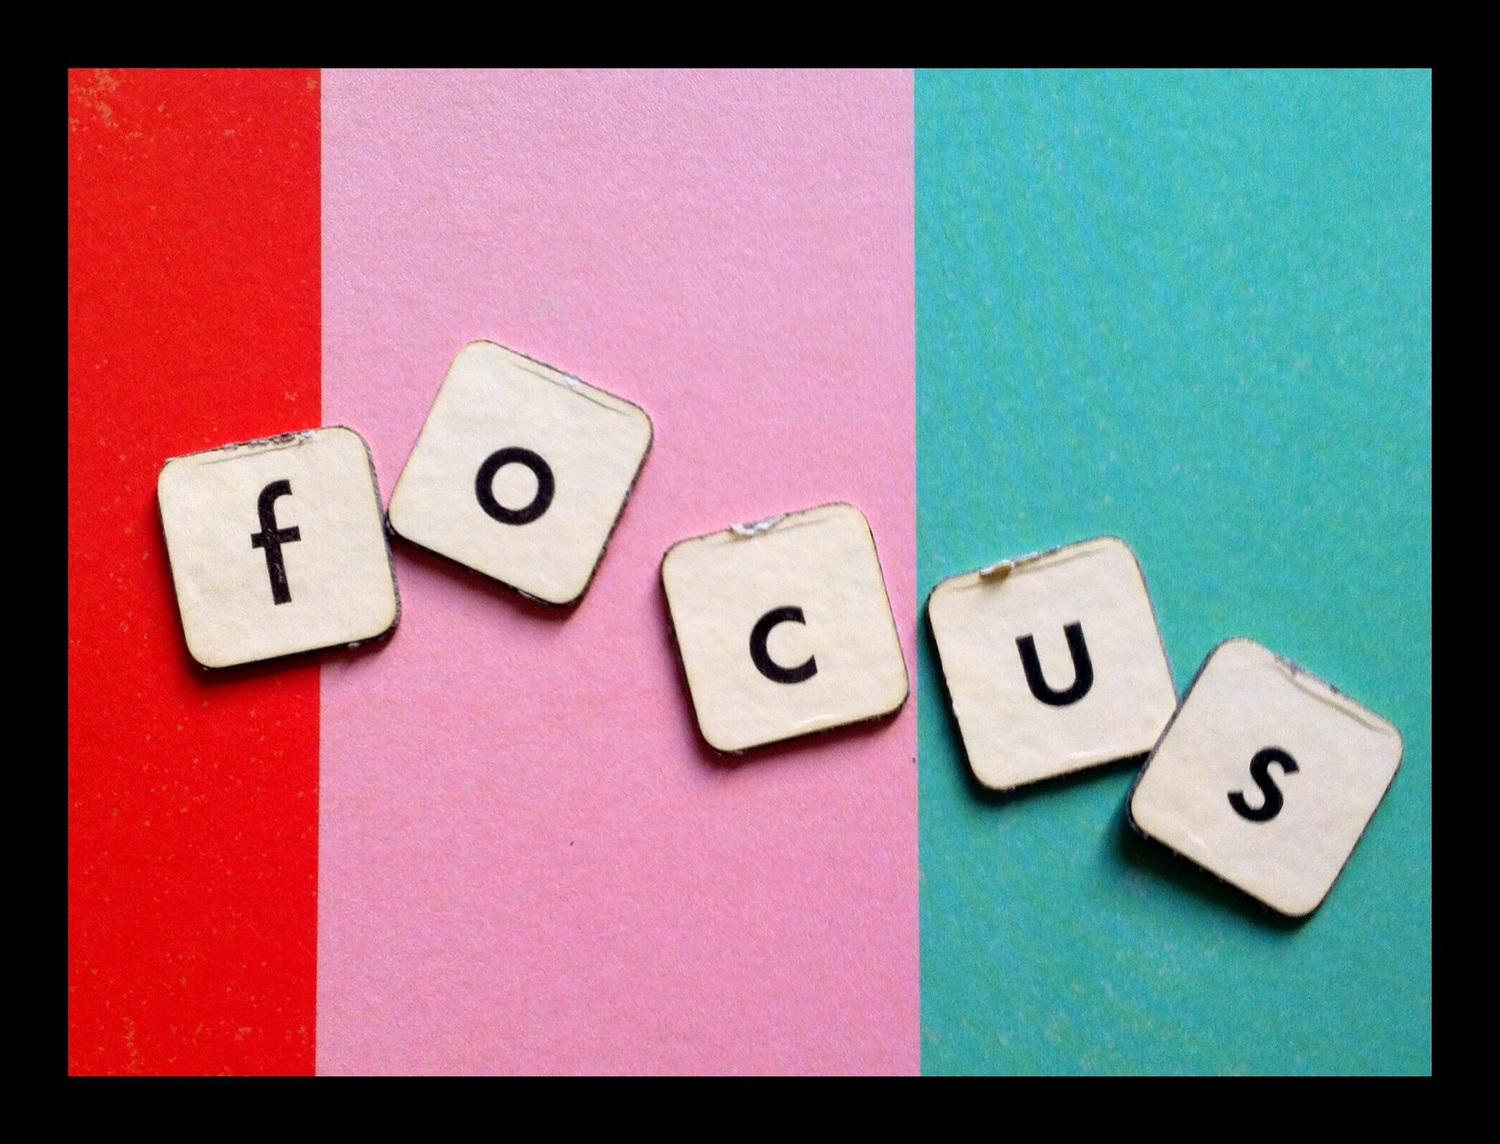 Bring on a focussed 2015!